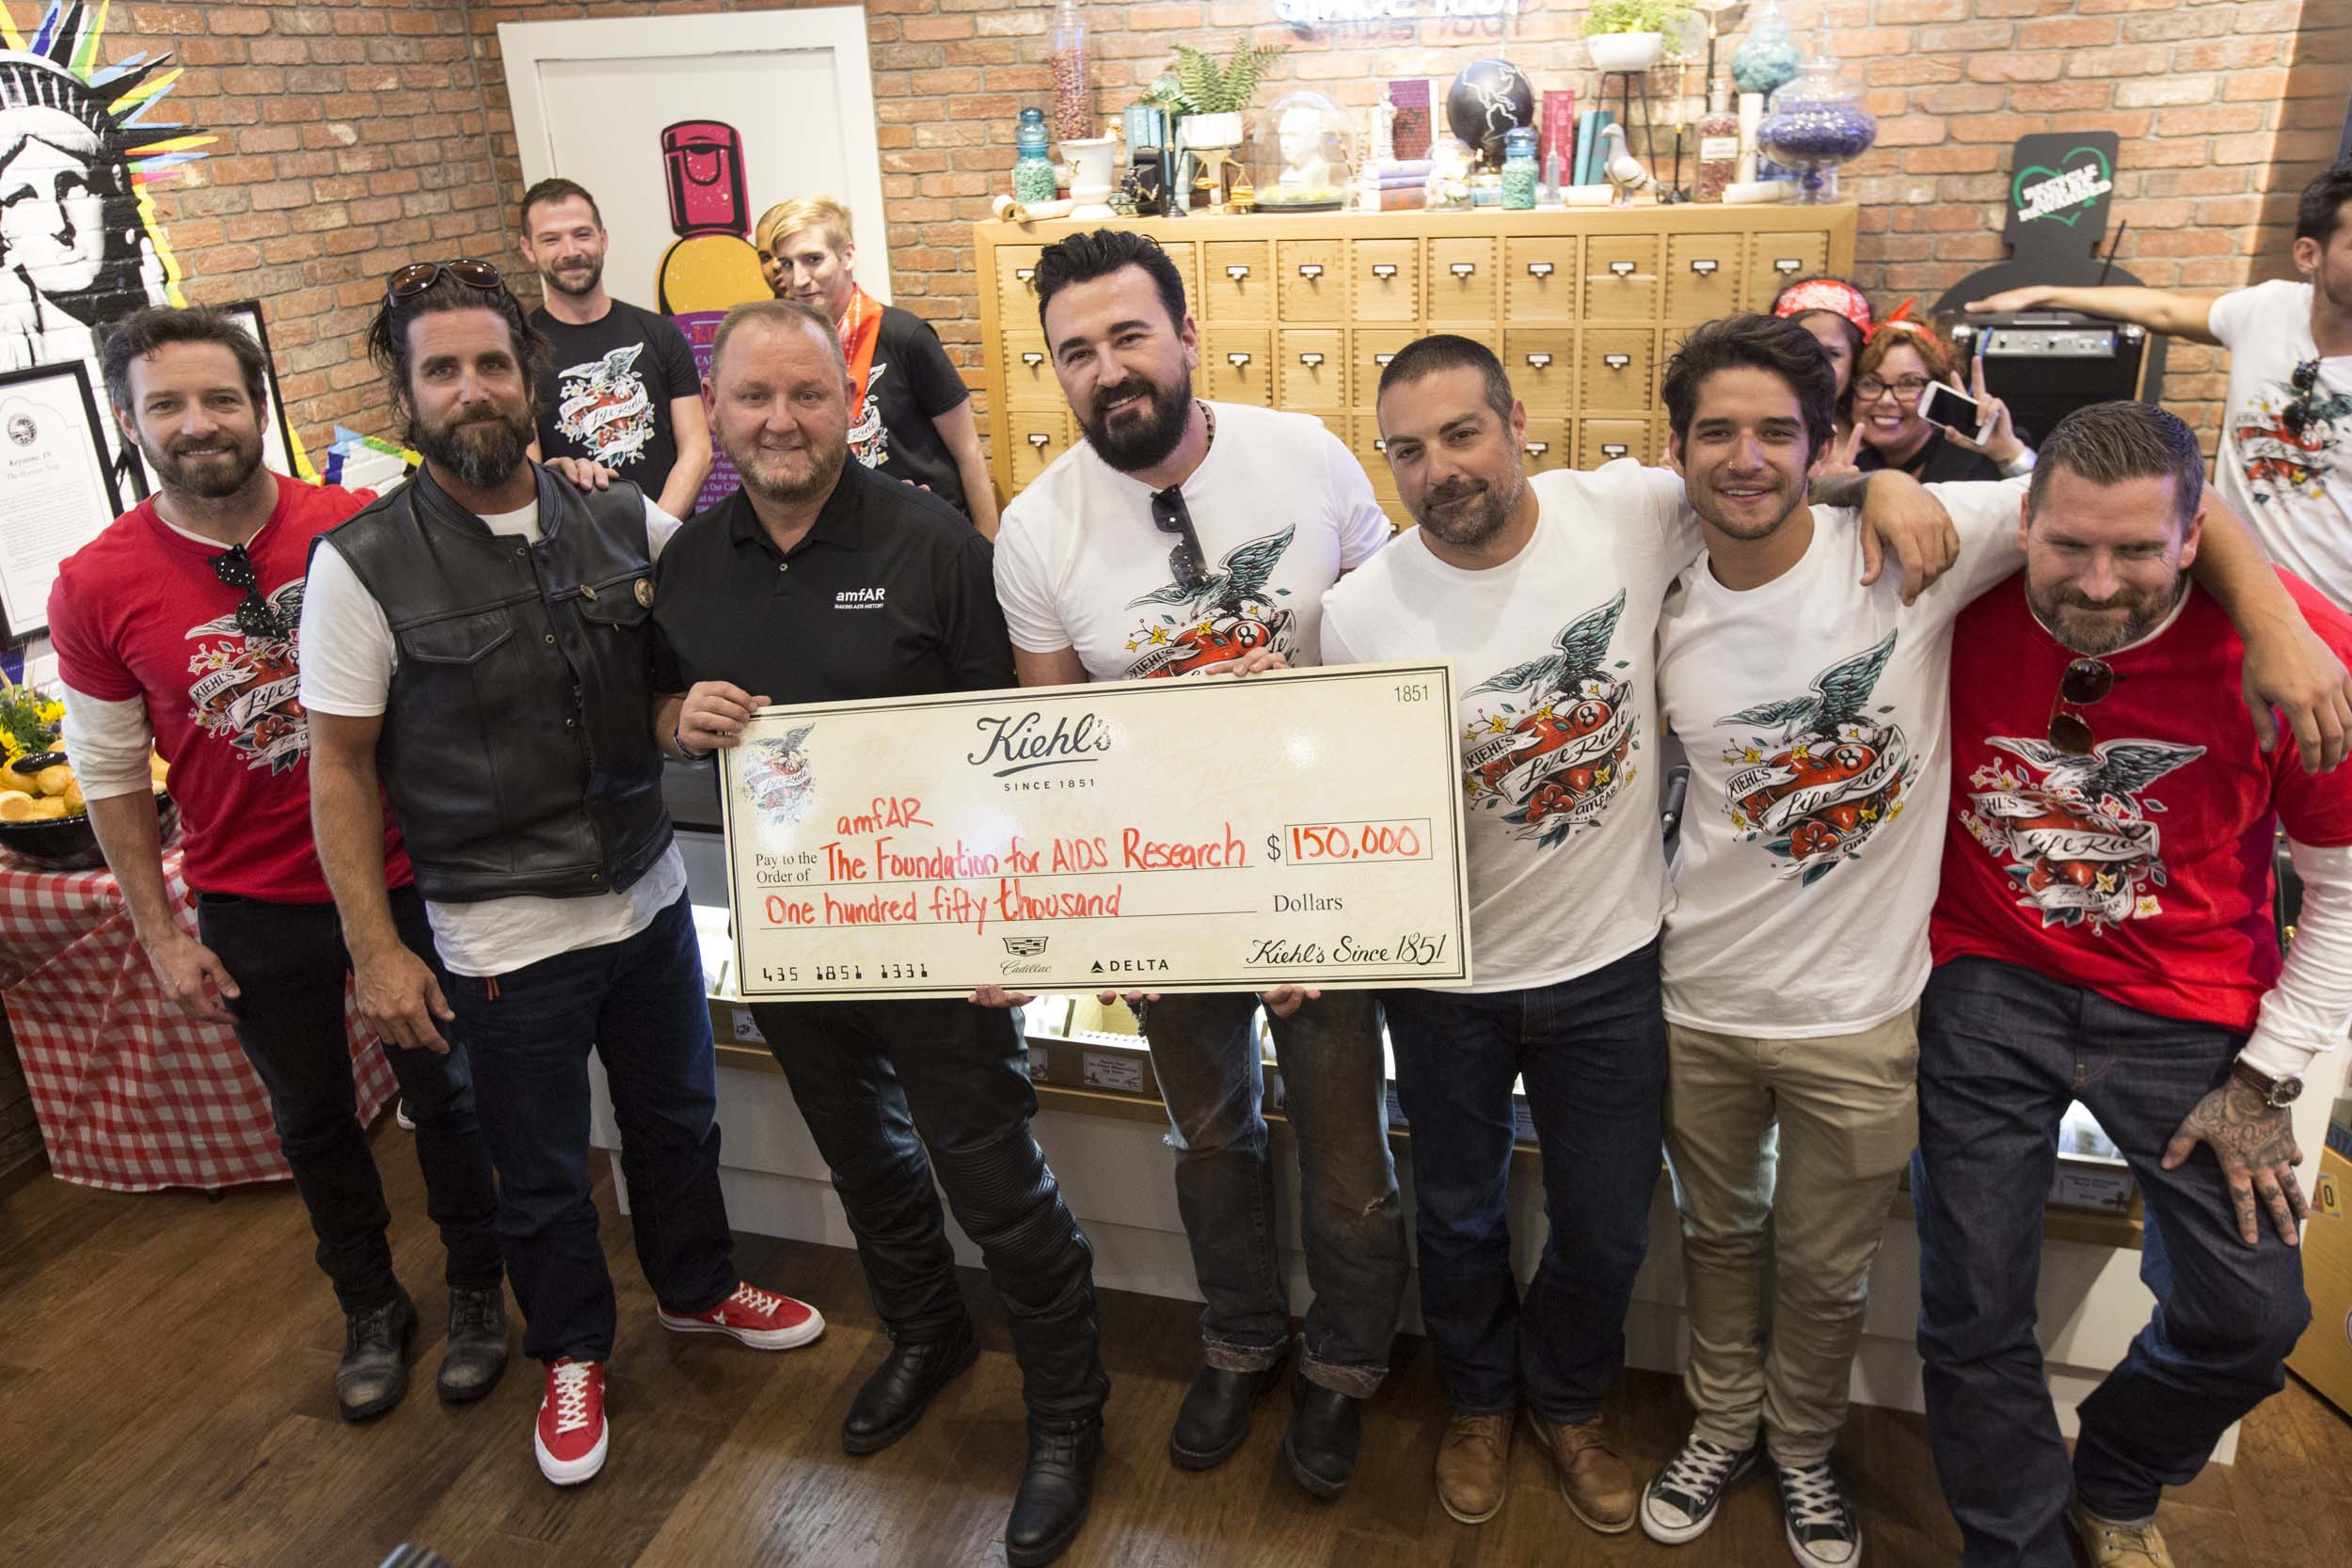 Ian Bohen, Grant Reynolds, Kevin Robert Frost, Chris Salgardo, Anthony Carrino, Tyler Posey and Luke Wessman rode motorcycles from Minneapolis to Nashville, to raise funds and awareness for amfAR, The Foundation for AIDS Research. Fundraising will continue through August.